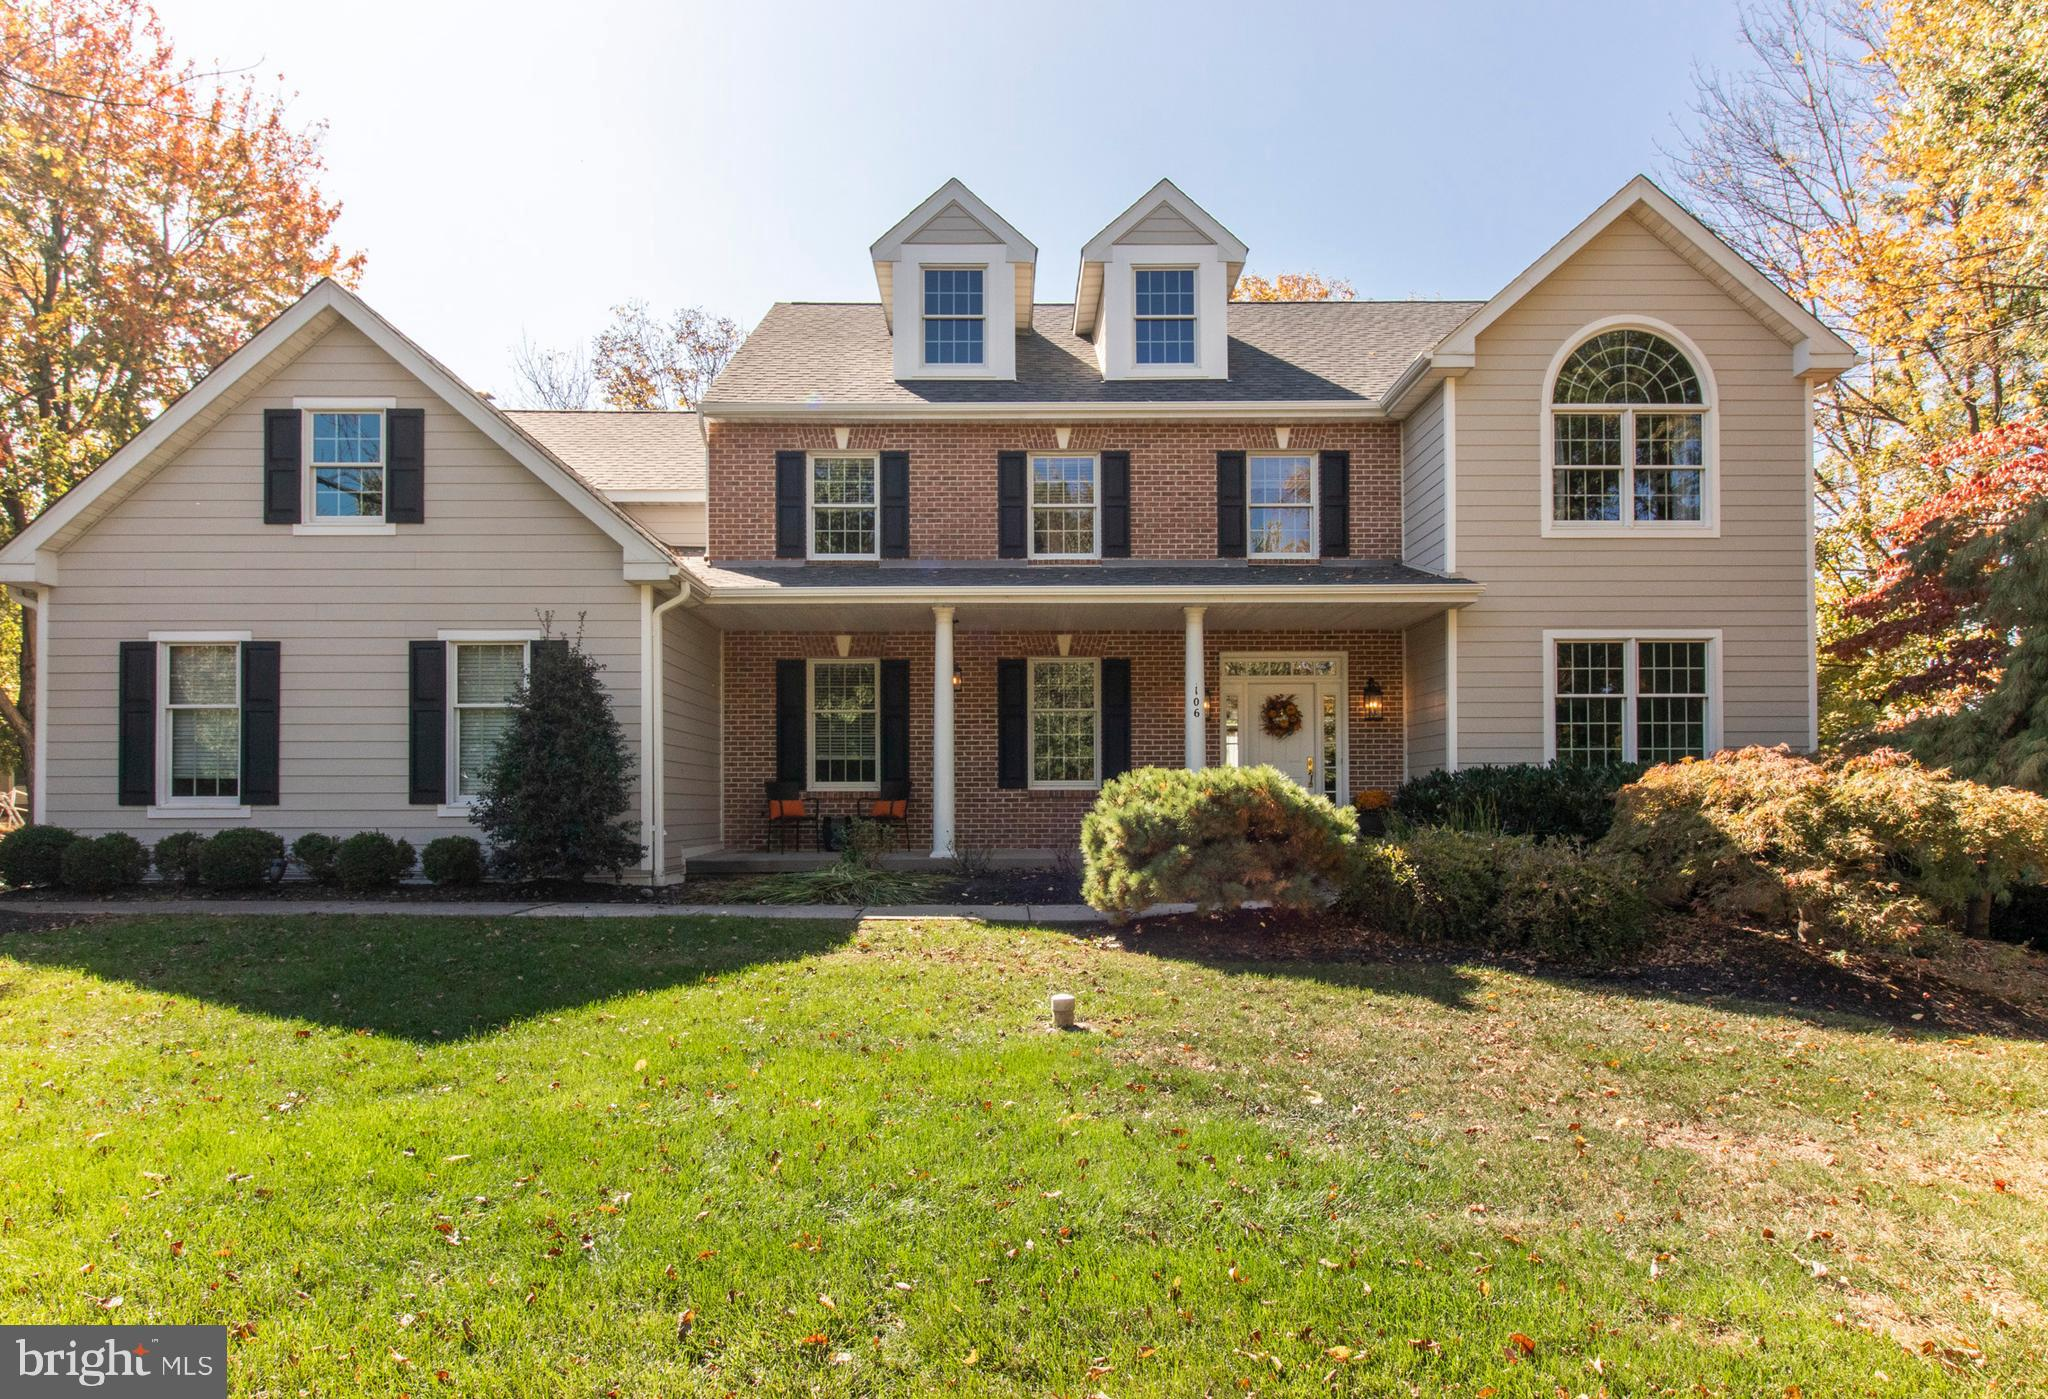 106 MANOR DRIVE, LANSDALE, PA 19446